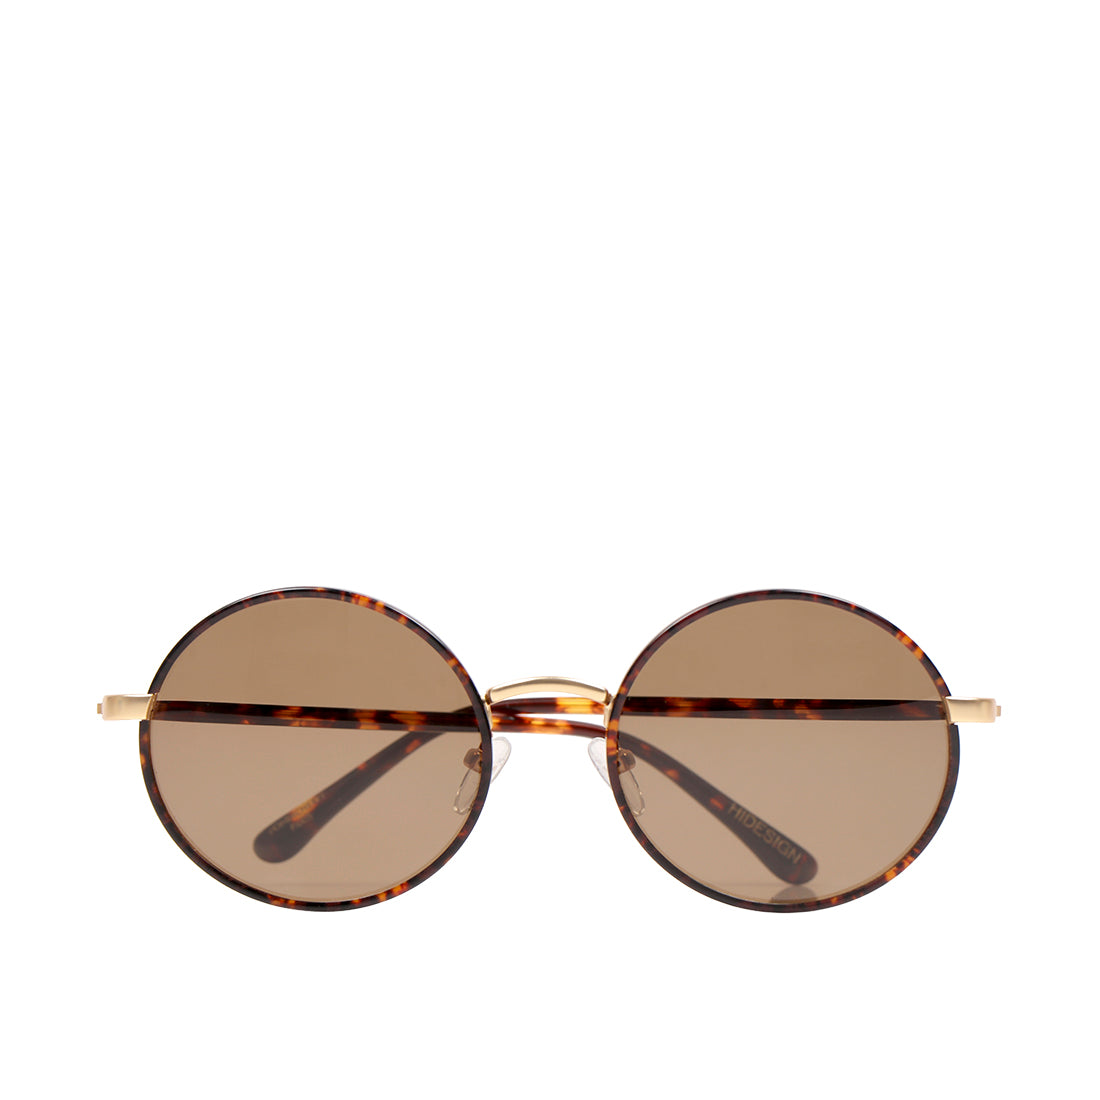 PARIS ROUND SUNGLASS